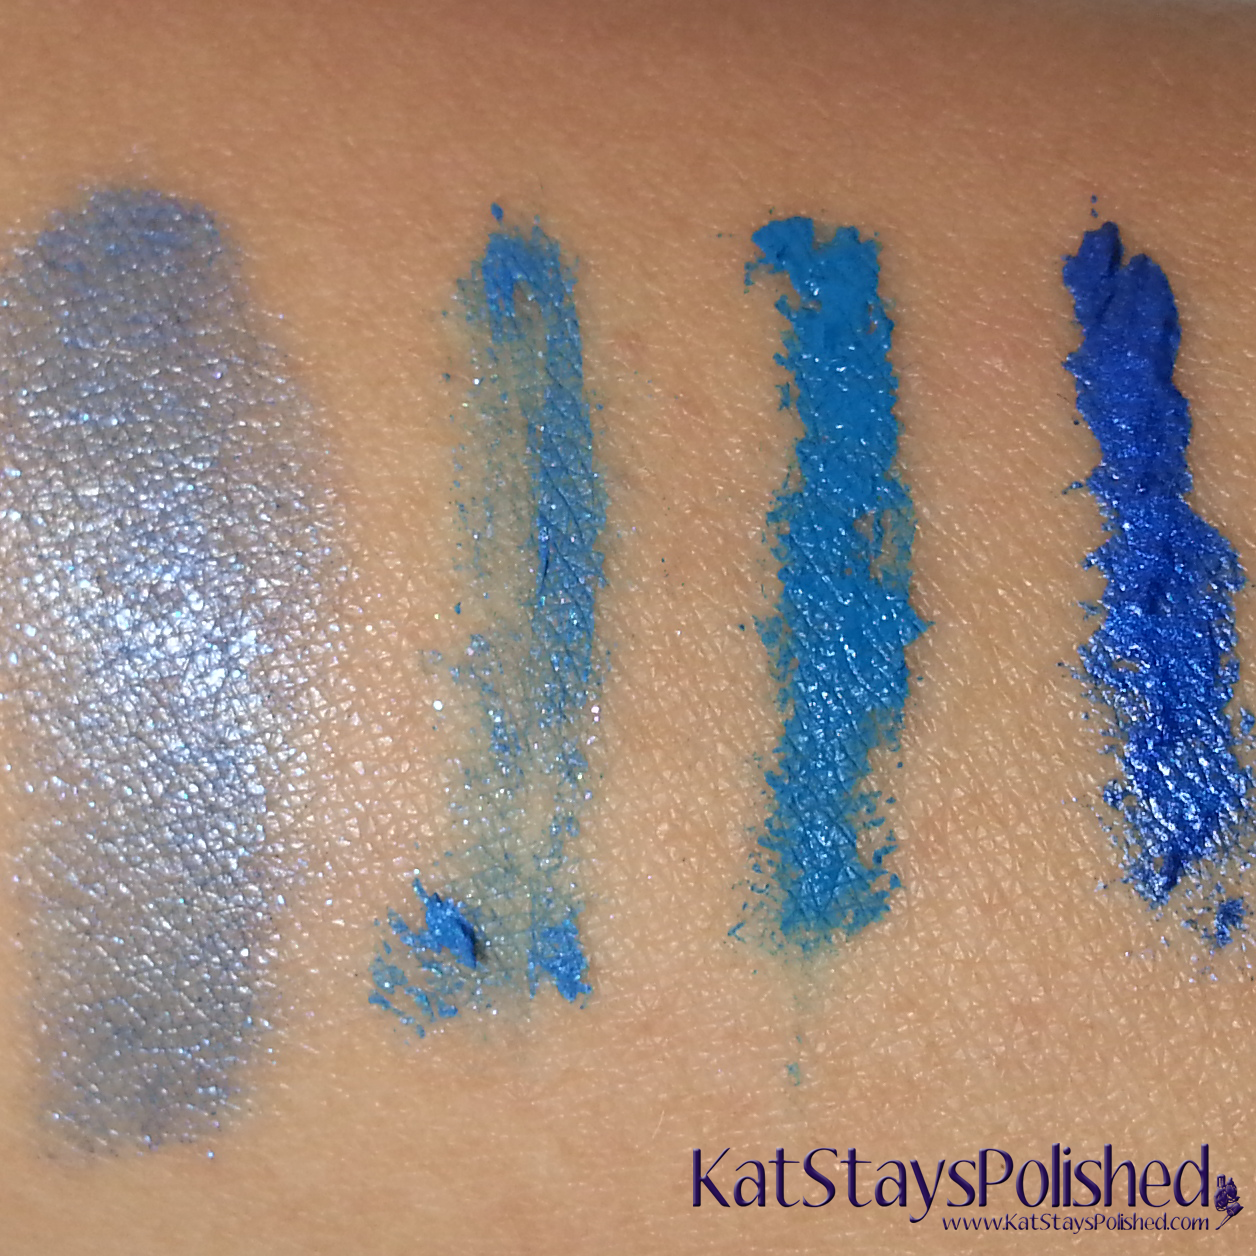 Milani Bella Blue Collection - Lipstick and Mascara Swatches | Kat Stays Polished